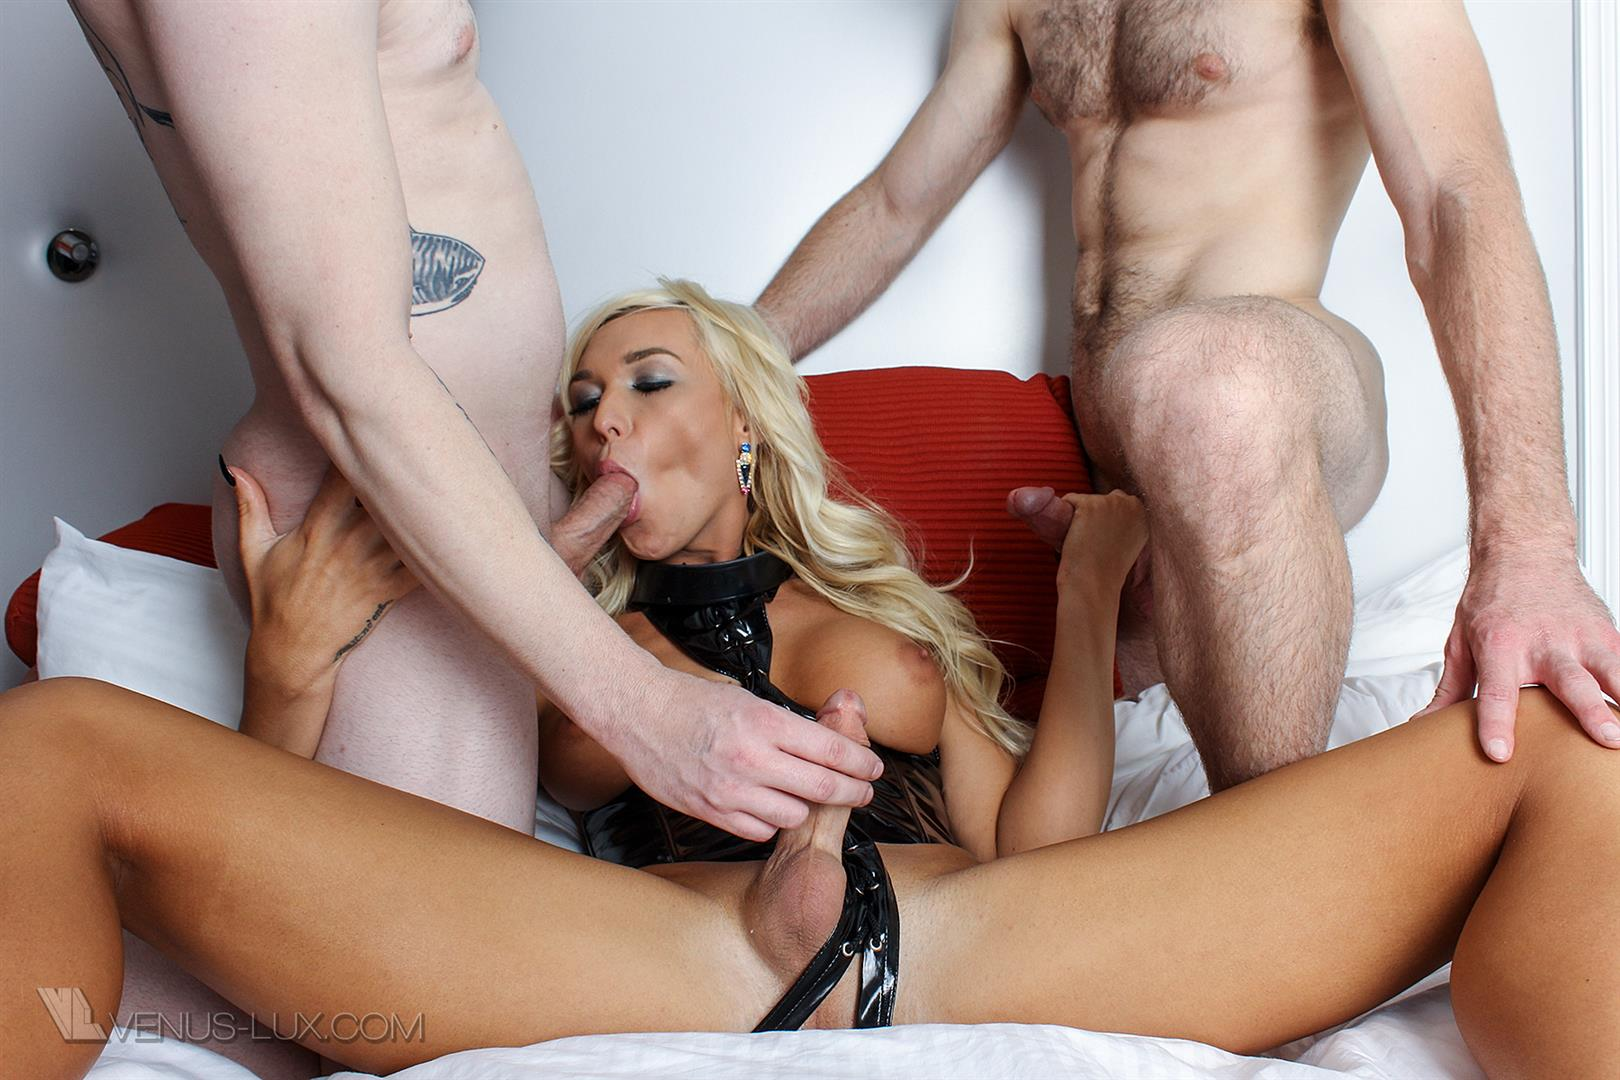 Venus-Lux-Aubrey-Kate-Tranny-Bareback-Fucked-By-2-Straight-Guys-36 Two Straight Guys Take Turns Barebacking A Hot Tranny